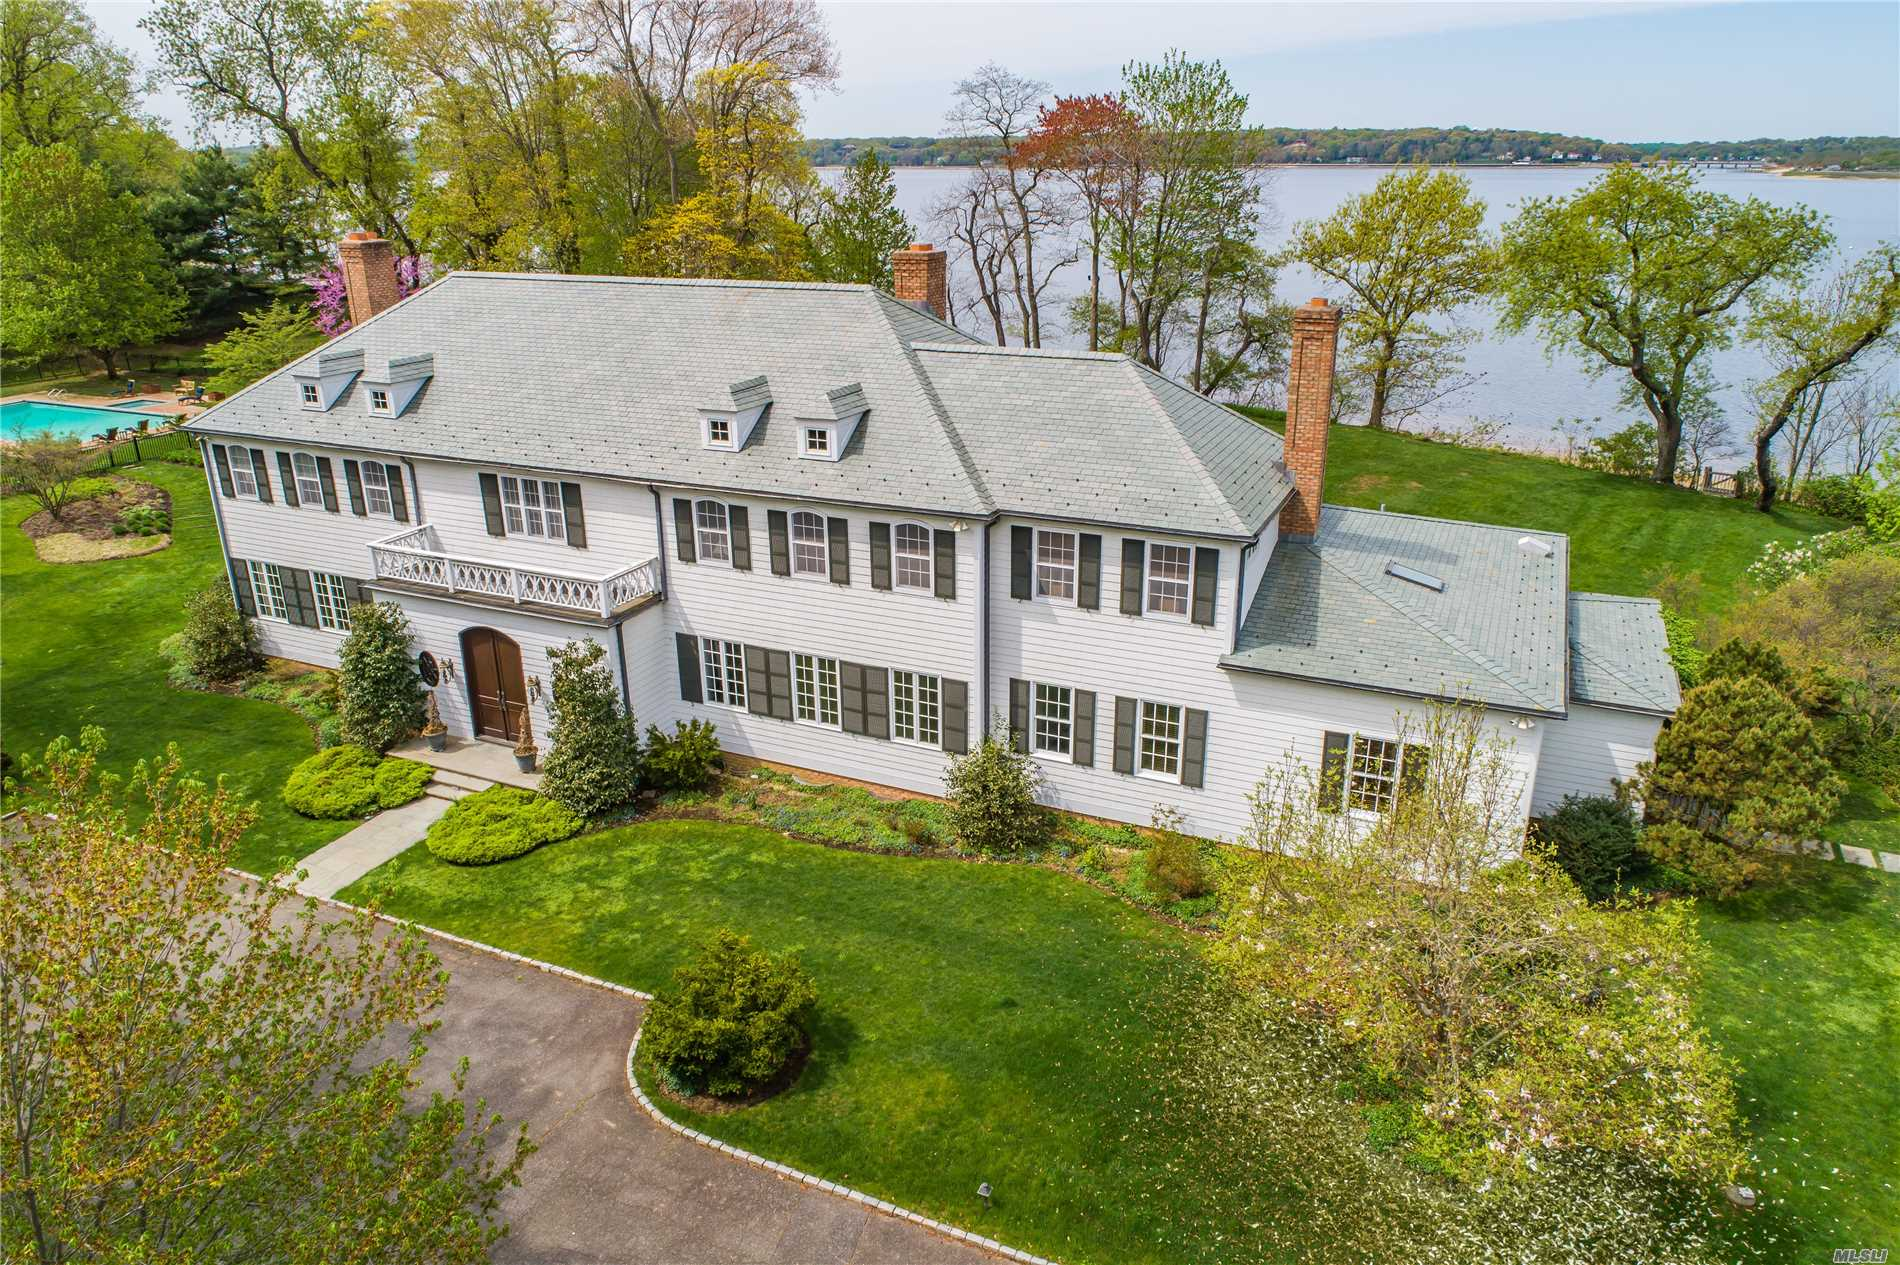 New Price. Breathtaking Western Water Views And Sunsets Plus 394' Of Sandy Beach. Elegance Abounds In This Custom Colonial With 12' Ceilings, Tall Arched Doorways And Stunning Mill Work. Every Room Captures Magical Views Of Ob Harbor. Incredible Details Include Curved Stairway, Maple Paneled Library, Floor-To-Ceiling Windows In Sunroom, 4 Fpls, Mahogany Doors, Chippendale-Style Railings On Balconies, Lighted Steps To Beach, Plus Htd Pool & Moroccan Inspired Pool House.Floating Dock Allowed.